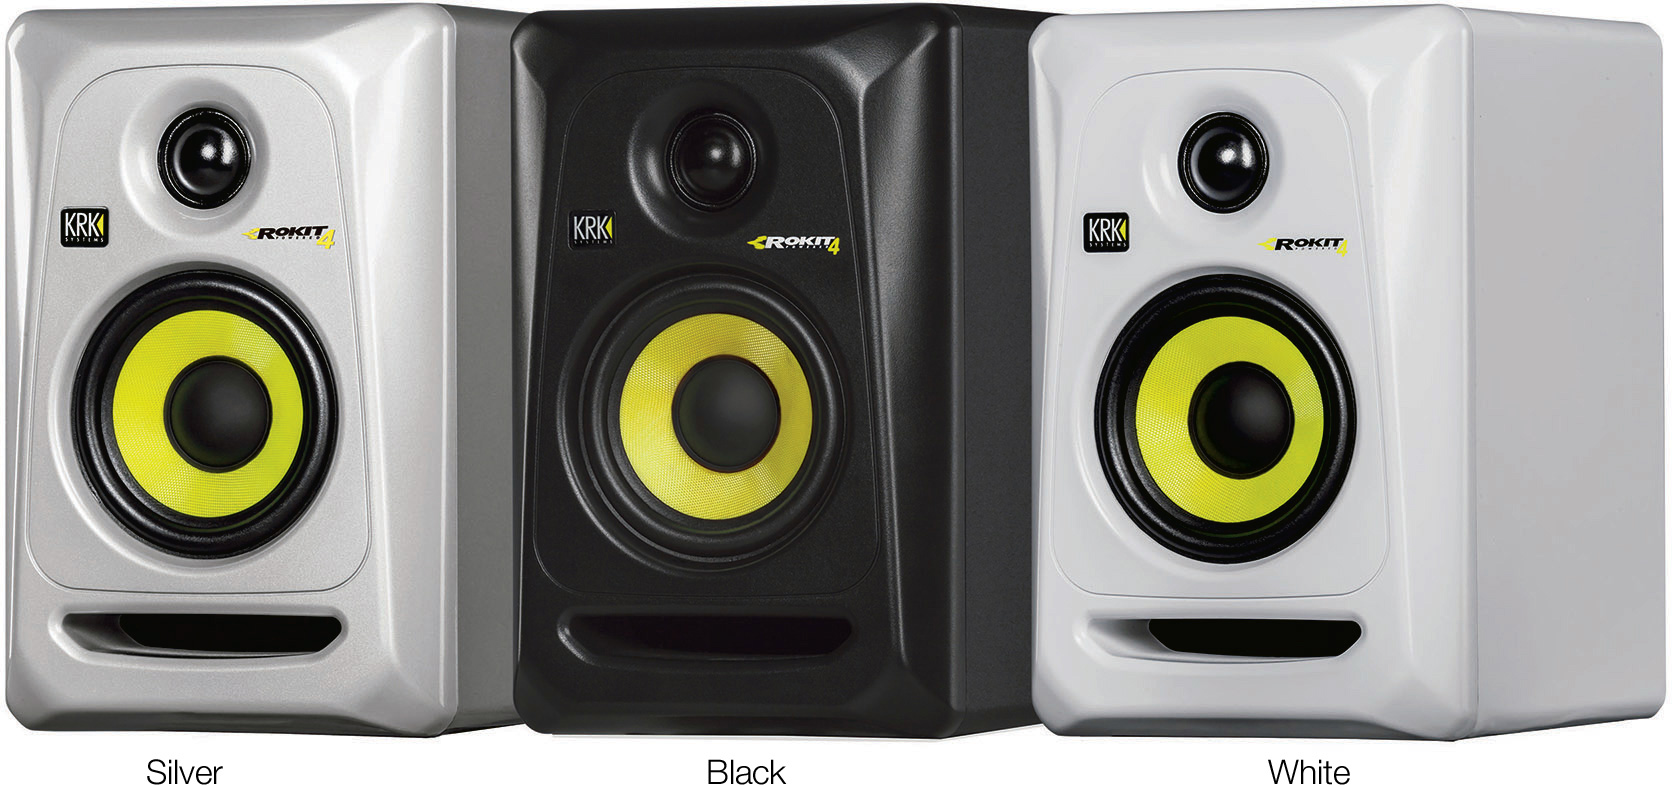 krk rp4g3 rokit 4 g3 30w 4 inch two way active studio monitor single black. Black Bedroom Furniture Sets. Home Design Ideas